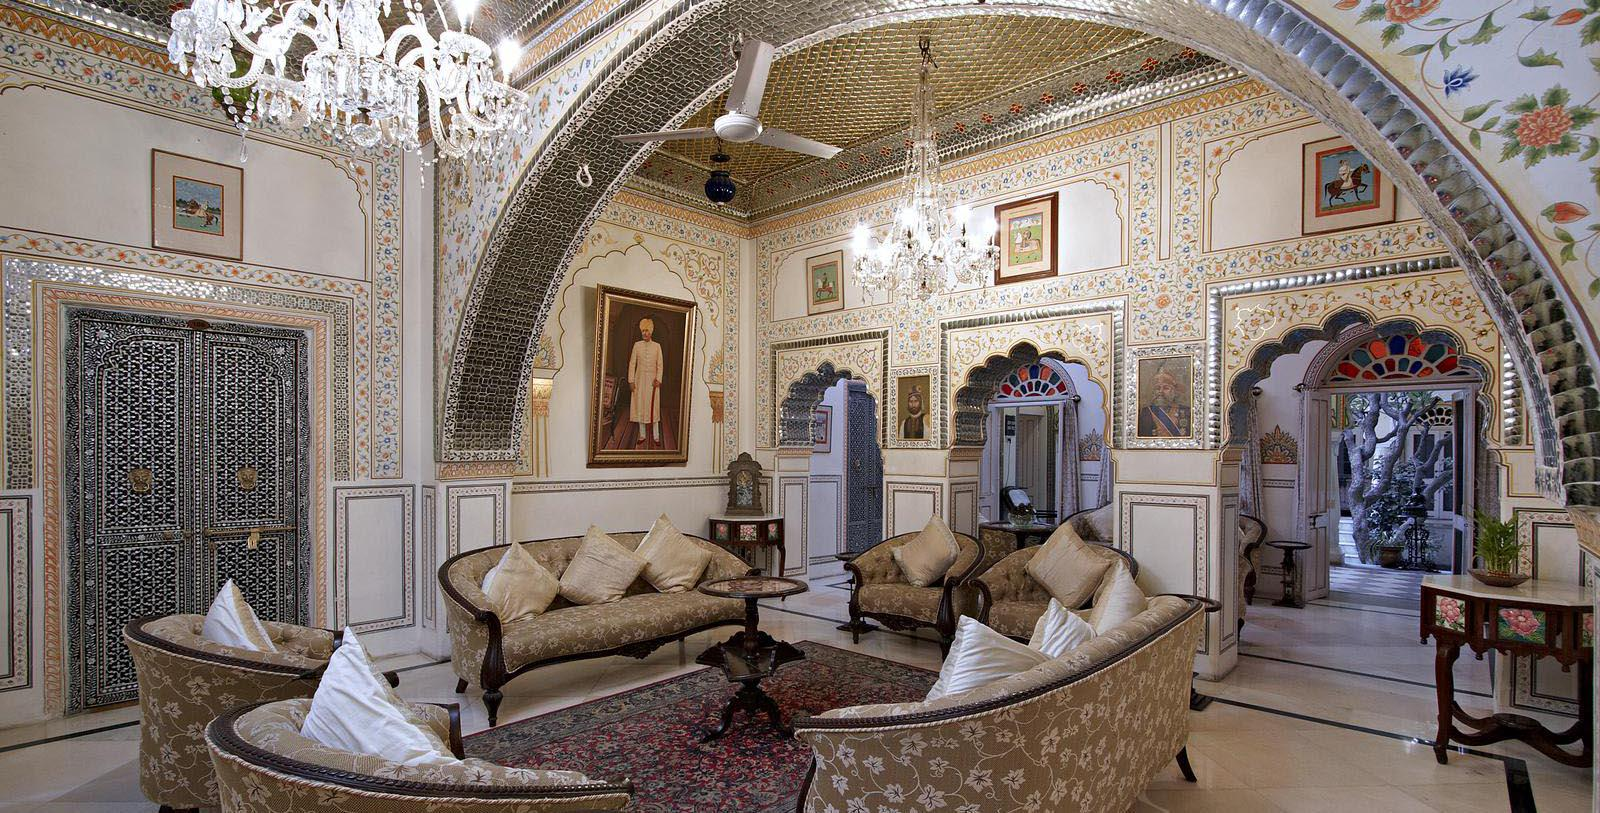 Image of lobby seating area at Alsisar Haveli, 1892, Member of Historic Hotels Worldwide, in Jaipur, India, Special Occasions